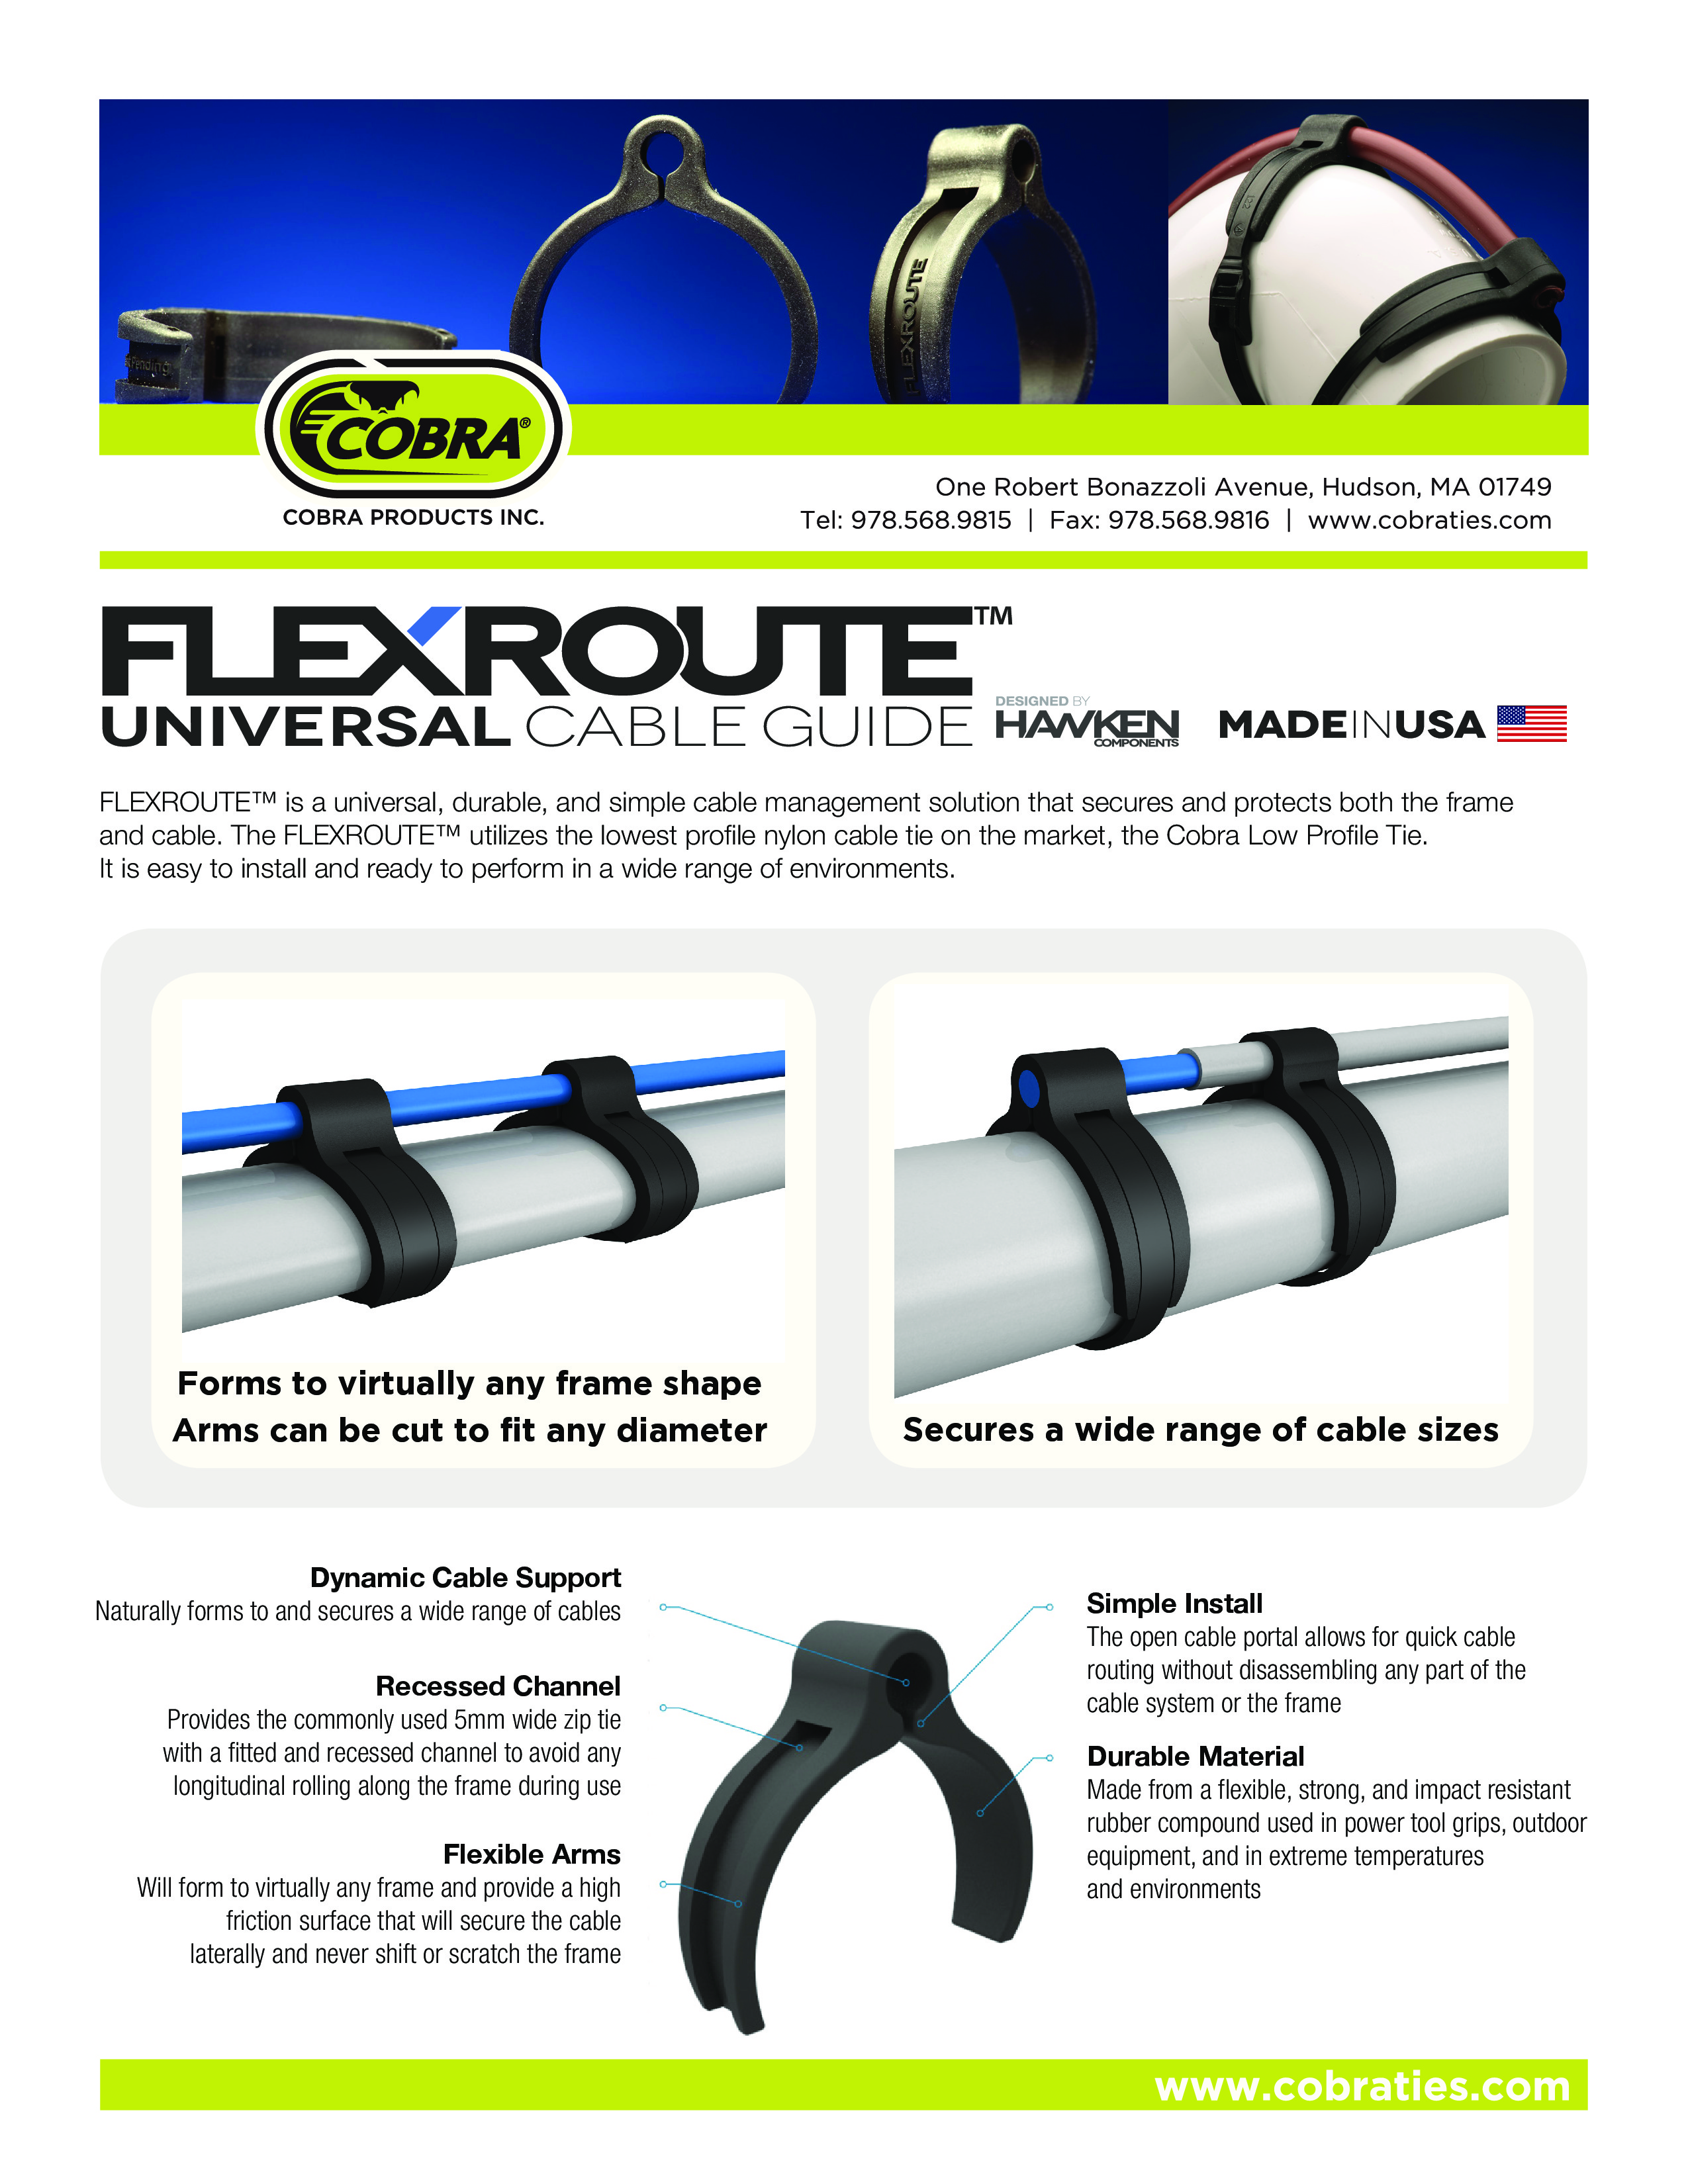 Cobra Products Introduces FLEXROUTE® Universal Cable Guide to ...